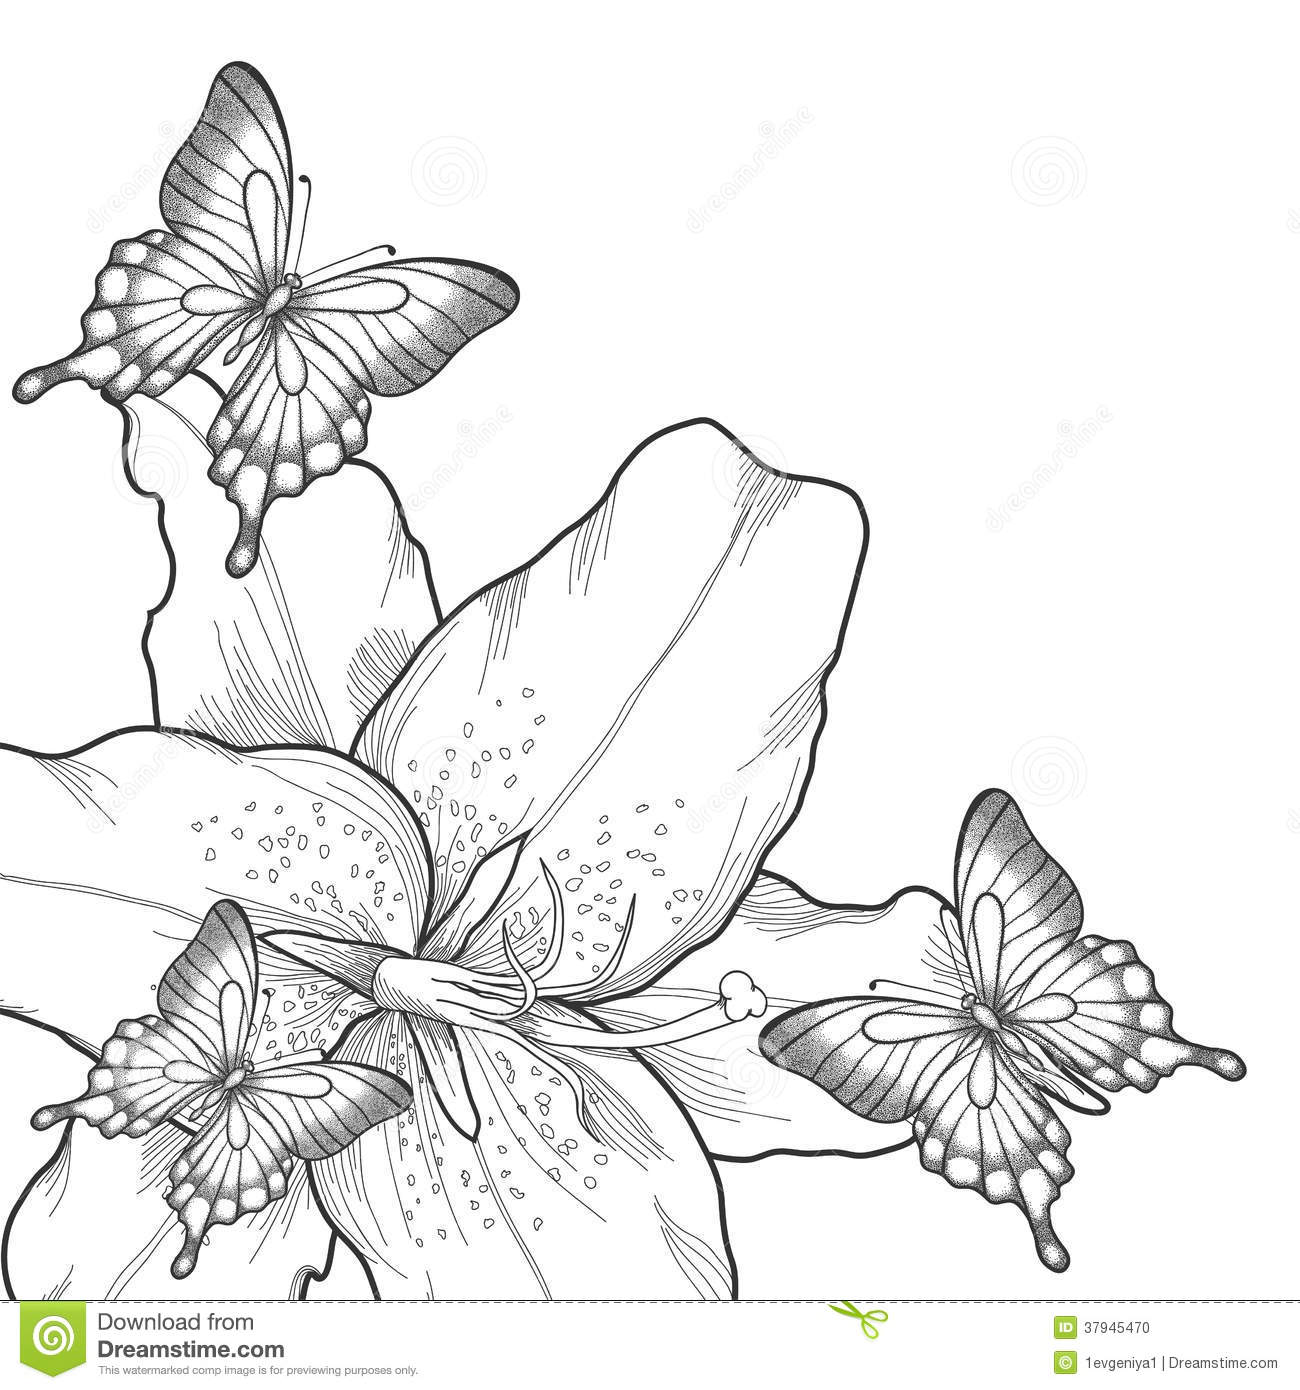 Contour Line Drawing Butterfly : Background for greeting card with monochrome black and